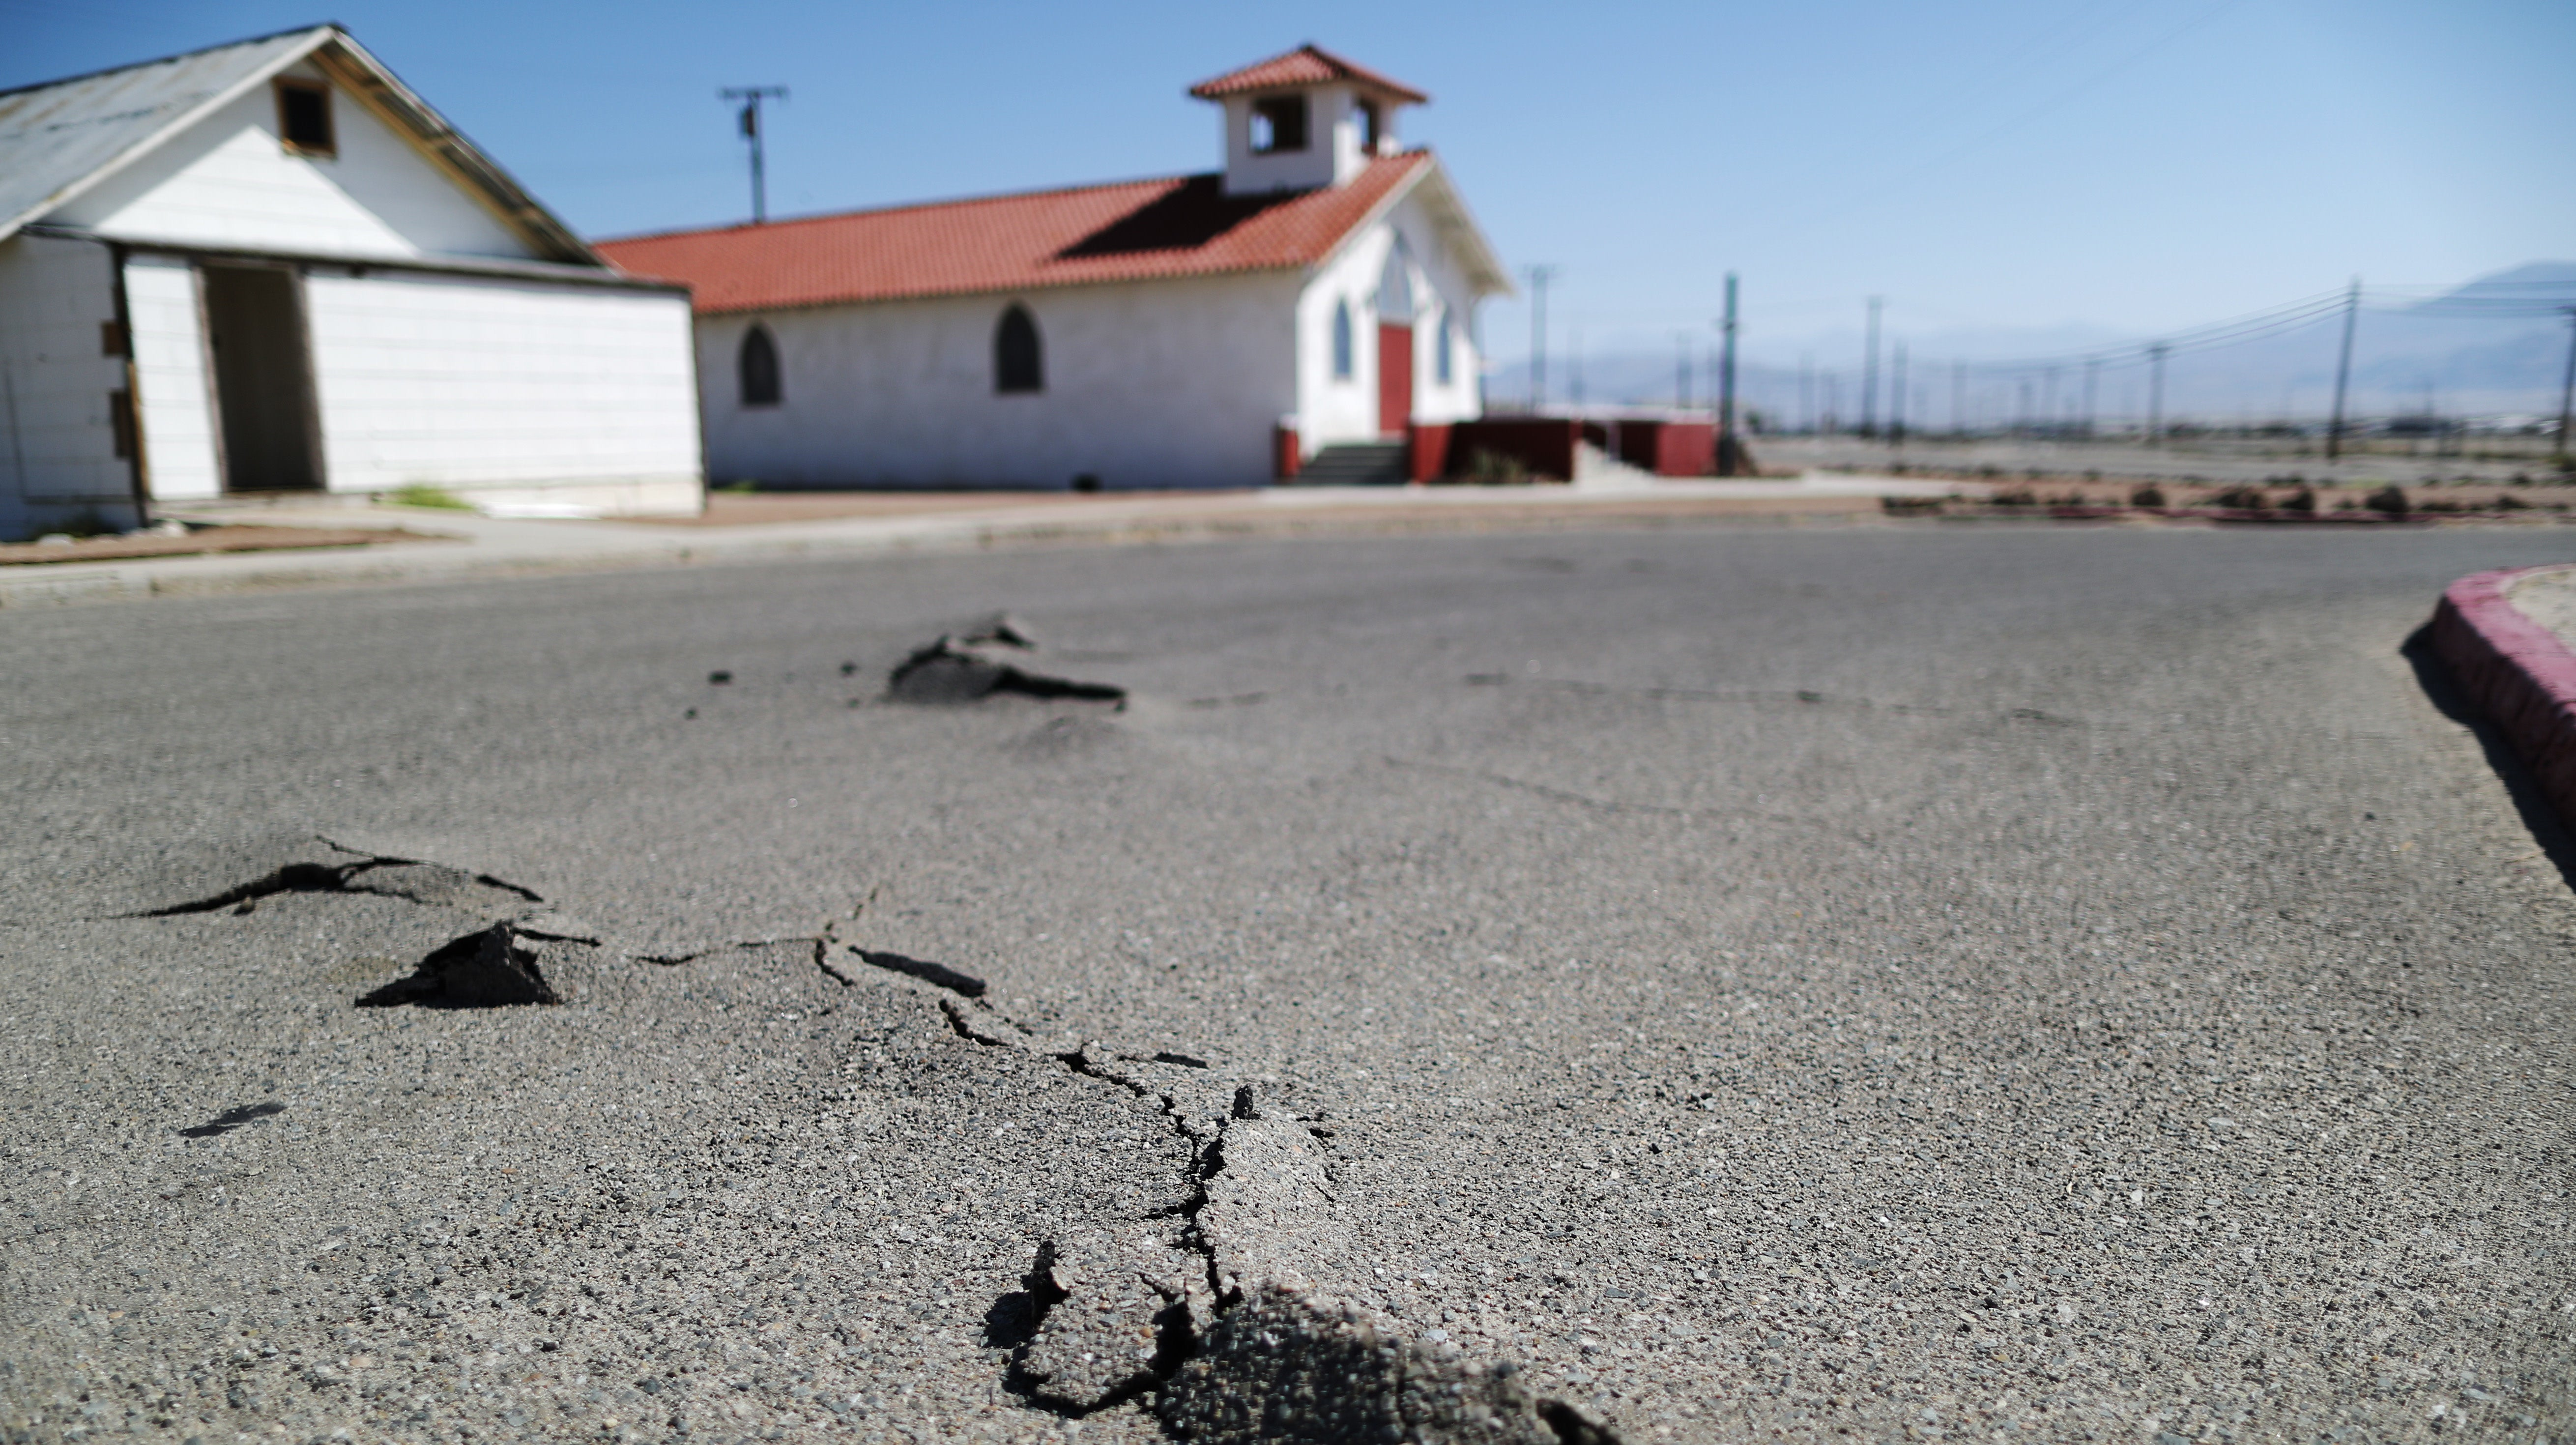 Never Been In An Earthquake? Here's What You Should Pack In An Emergency Kit